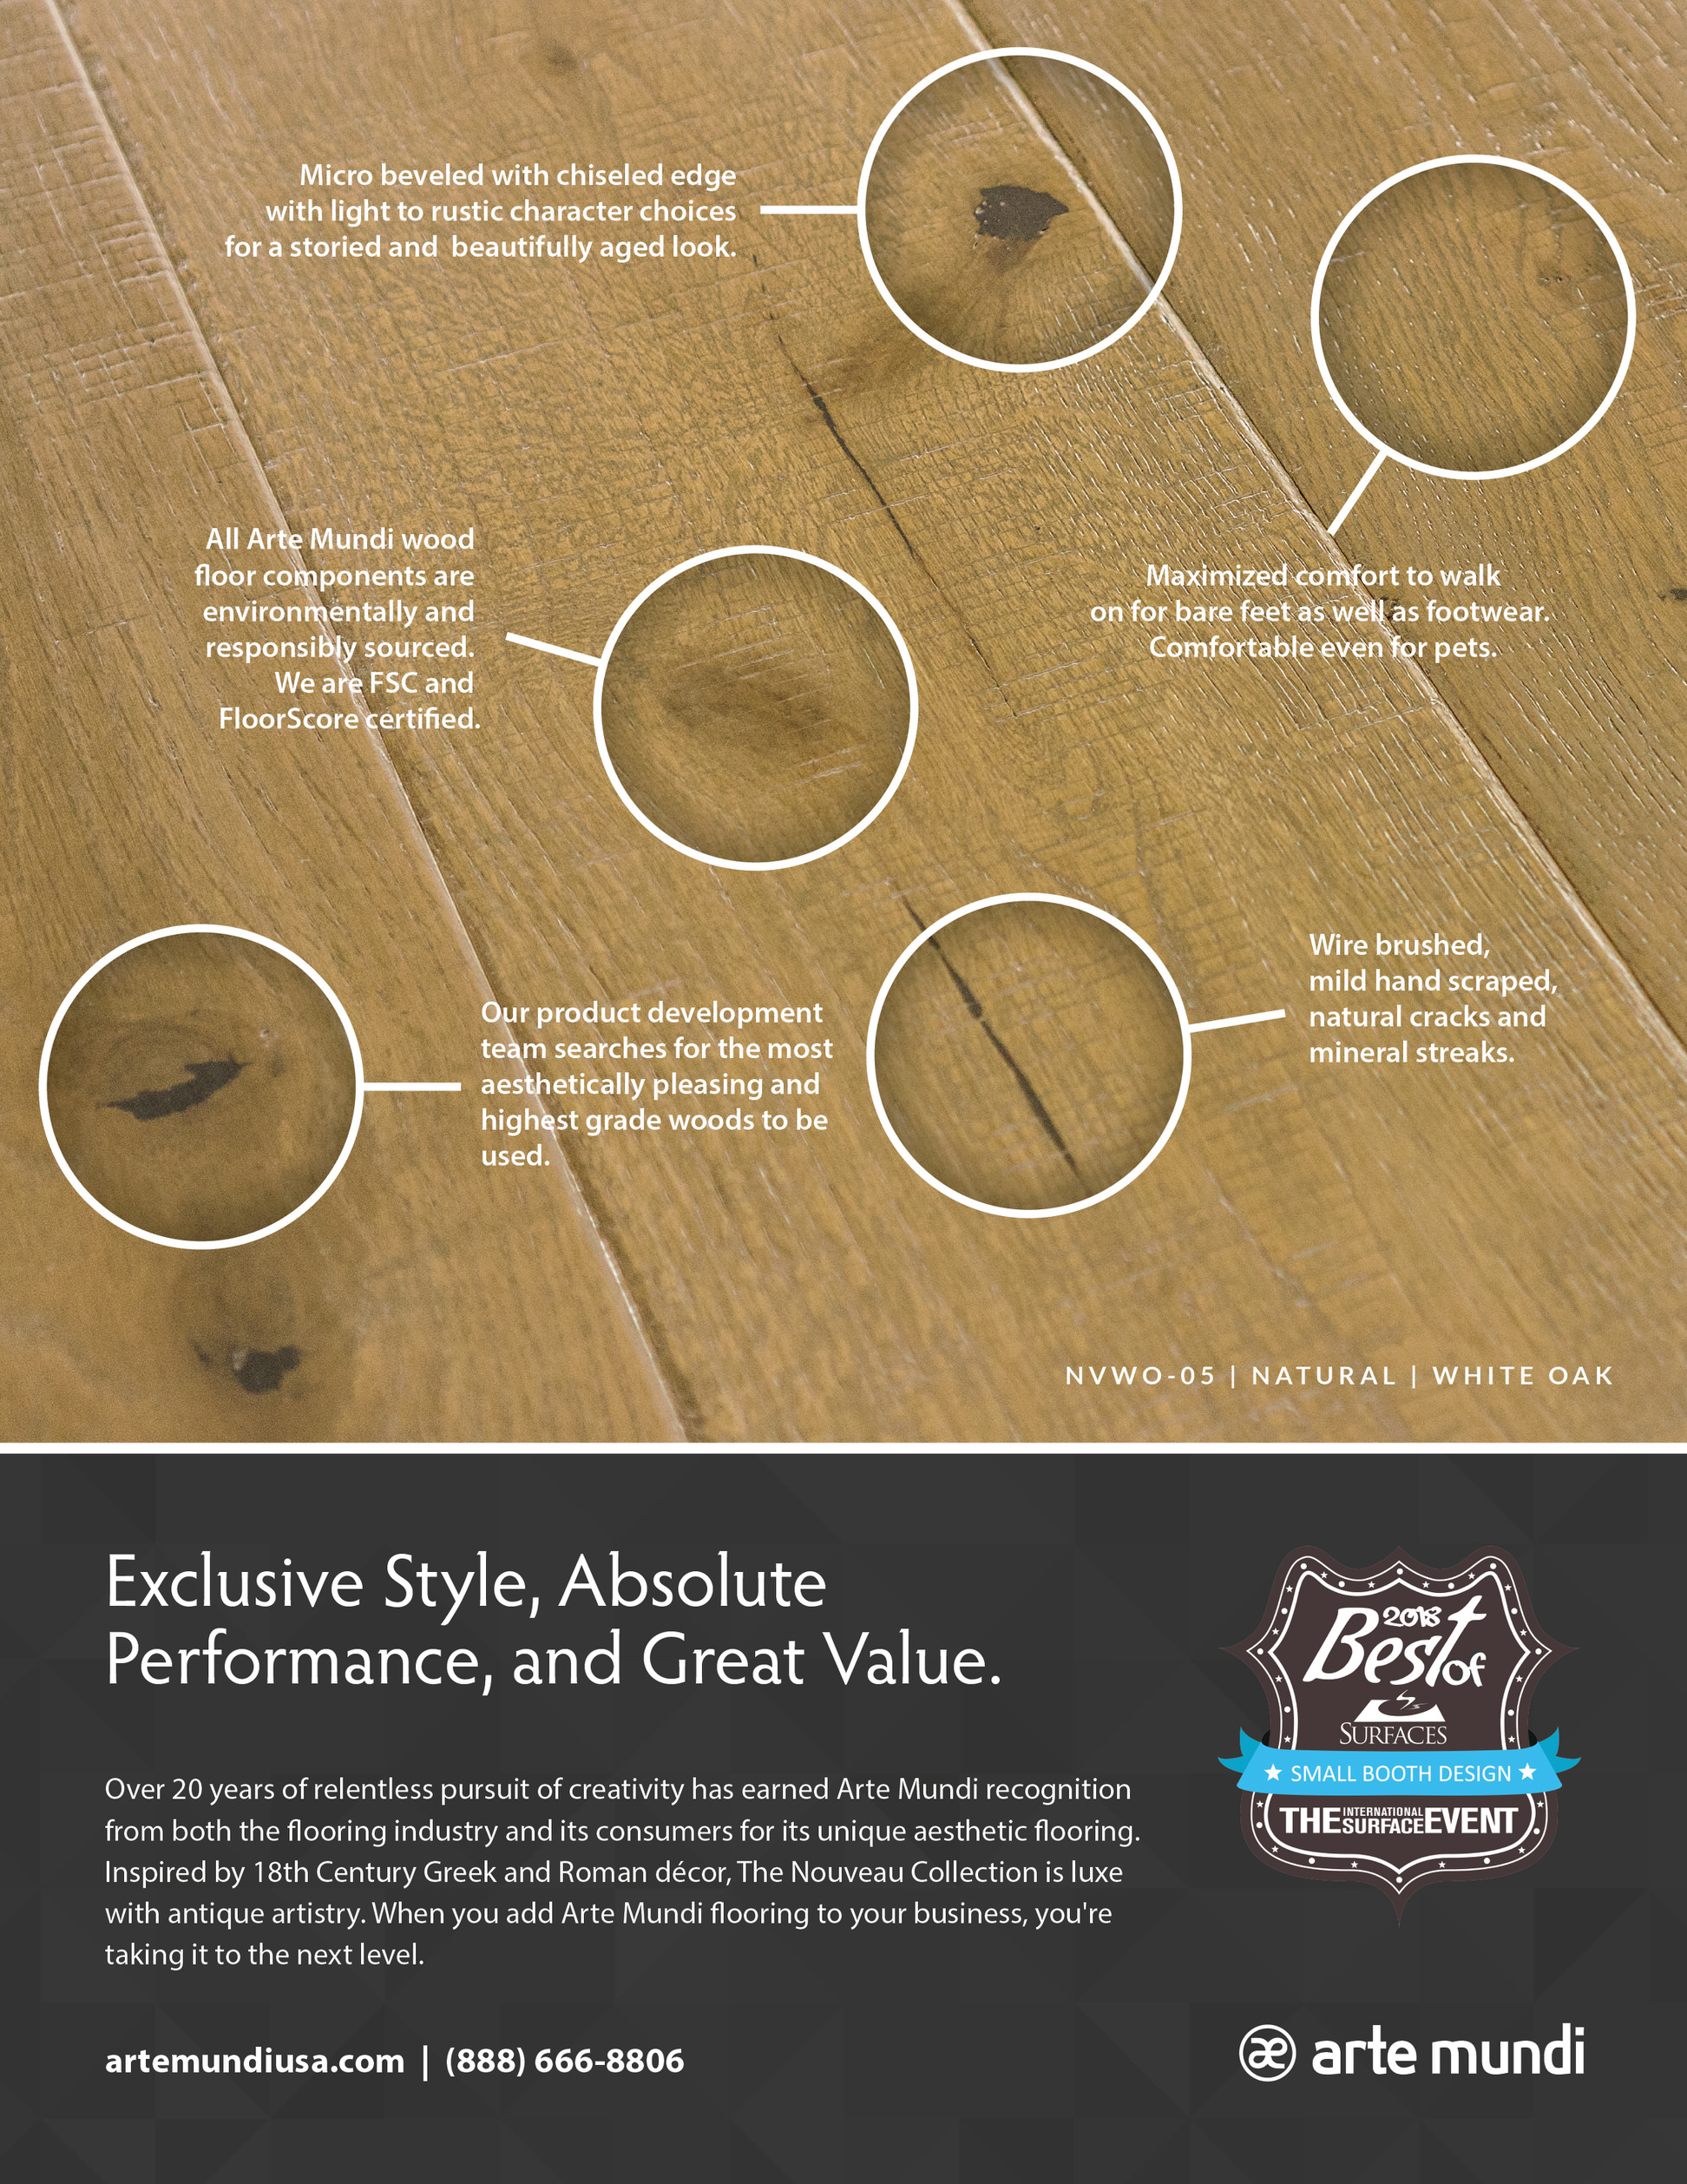 In this month's issue of Floor Covering News, we featured the specifics of our product that make Arte Mundi stand out from the rest.